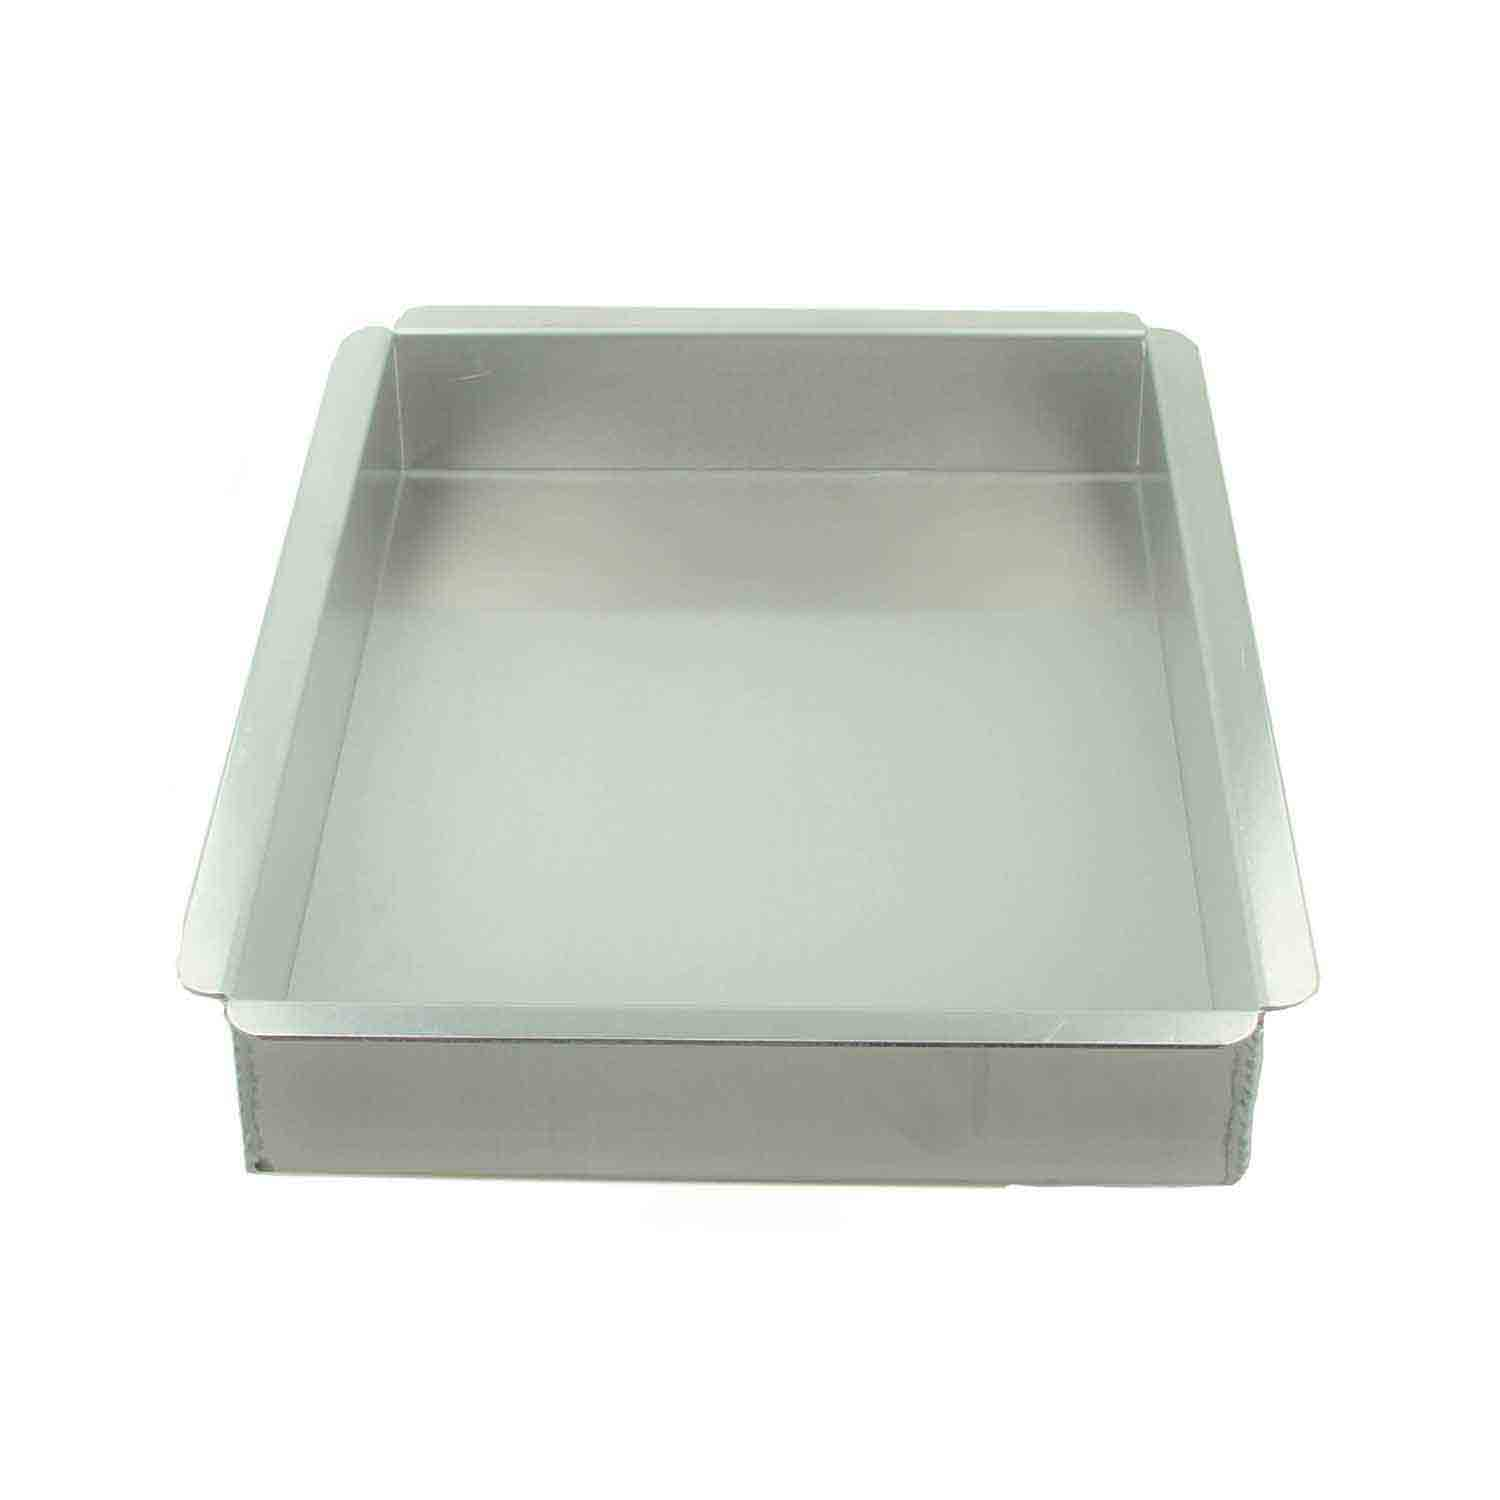 "9 x 13 x 2"" Magic Line Quarter Sheet Cake Pan"